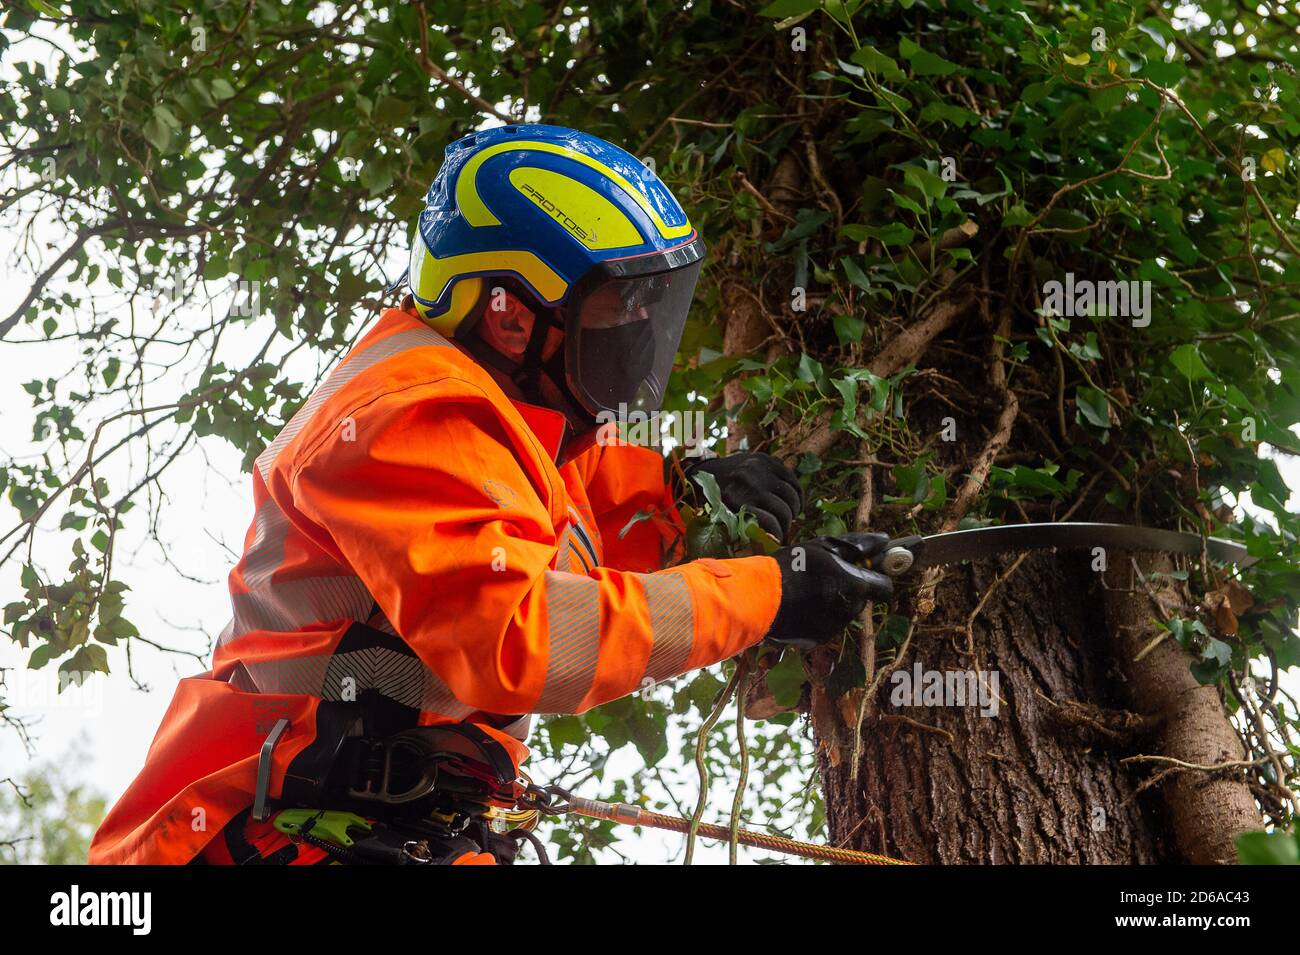 Denham, UK. 15th October, 2020. A tree cutter cuts ivy off a high mature tree ready for it's likely destruction inside an HS2 compound. The tree is on the other side of a high security fence next to the Denham Ford Protection Camp where environmental campaigners are living high in the trees protecting them from the clutches of HS2. The HS2 construction for the controversial High Speed Rail from London to Birmingham raises great concerns for environmental activists due to the impact the project is having on the countryside and woodlands. Credit: Maureen McLean/Alamy Stock Photo